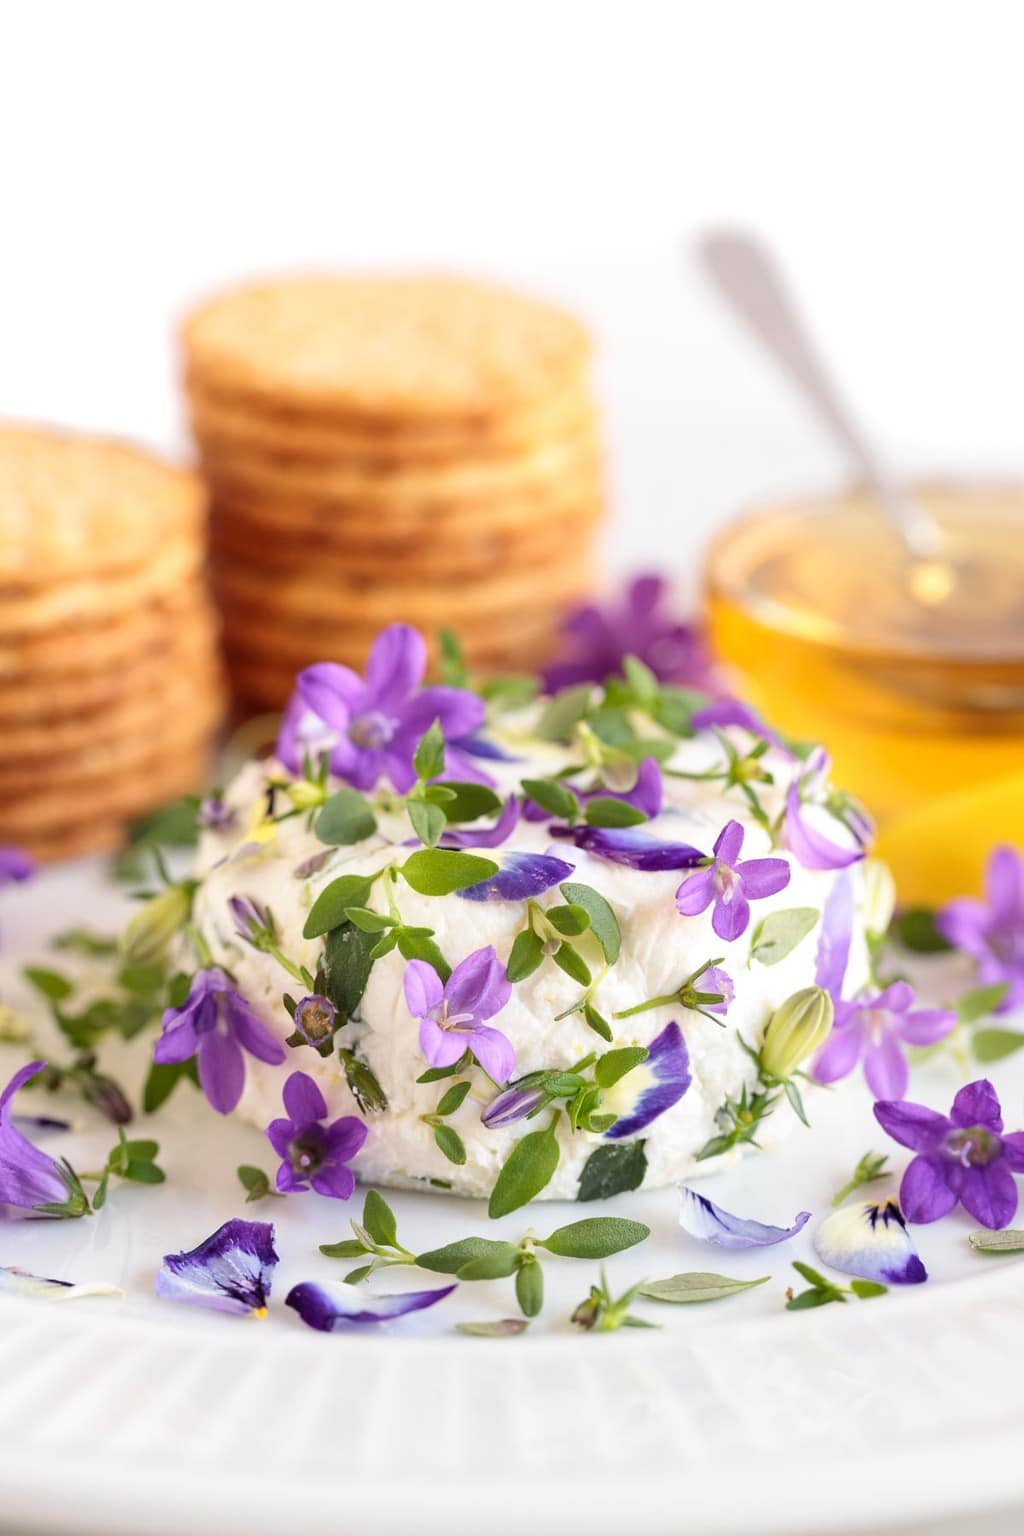 Closeup photo of an appetizer plate featuring the Easy Goat Cheese Appetizer decorated with tiny purple edible flowers. A small dish of honey and stacks of crackers are in the background.